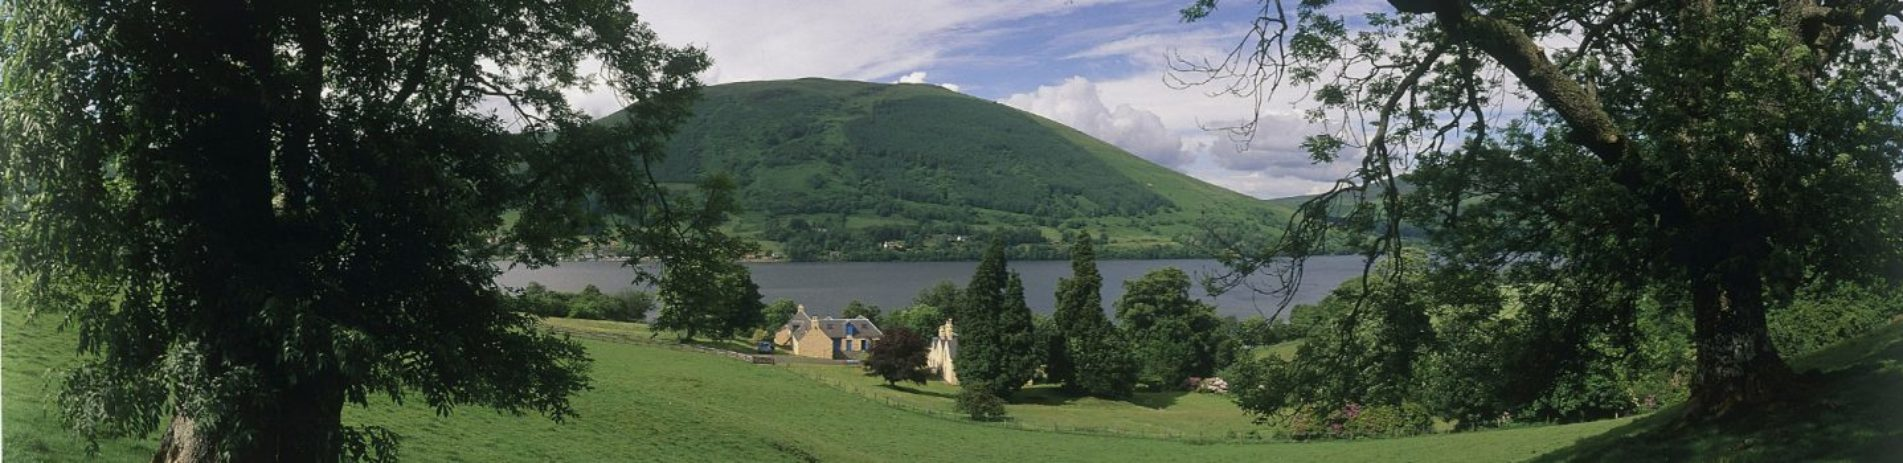 looking-through-trees-across-to-loch-earn-and-lochearnhead-village-forested-hills-in-the-background-blue-skies-with-some-clouds-above